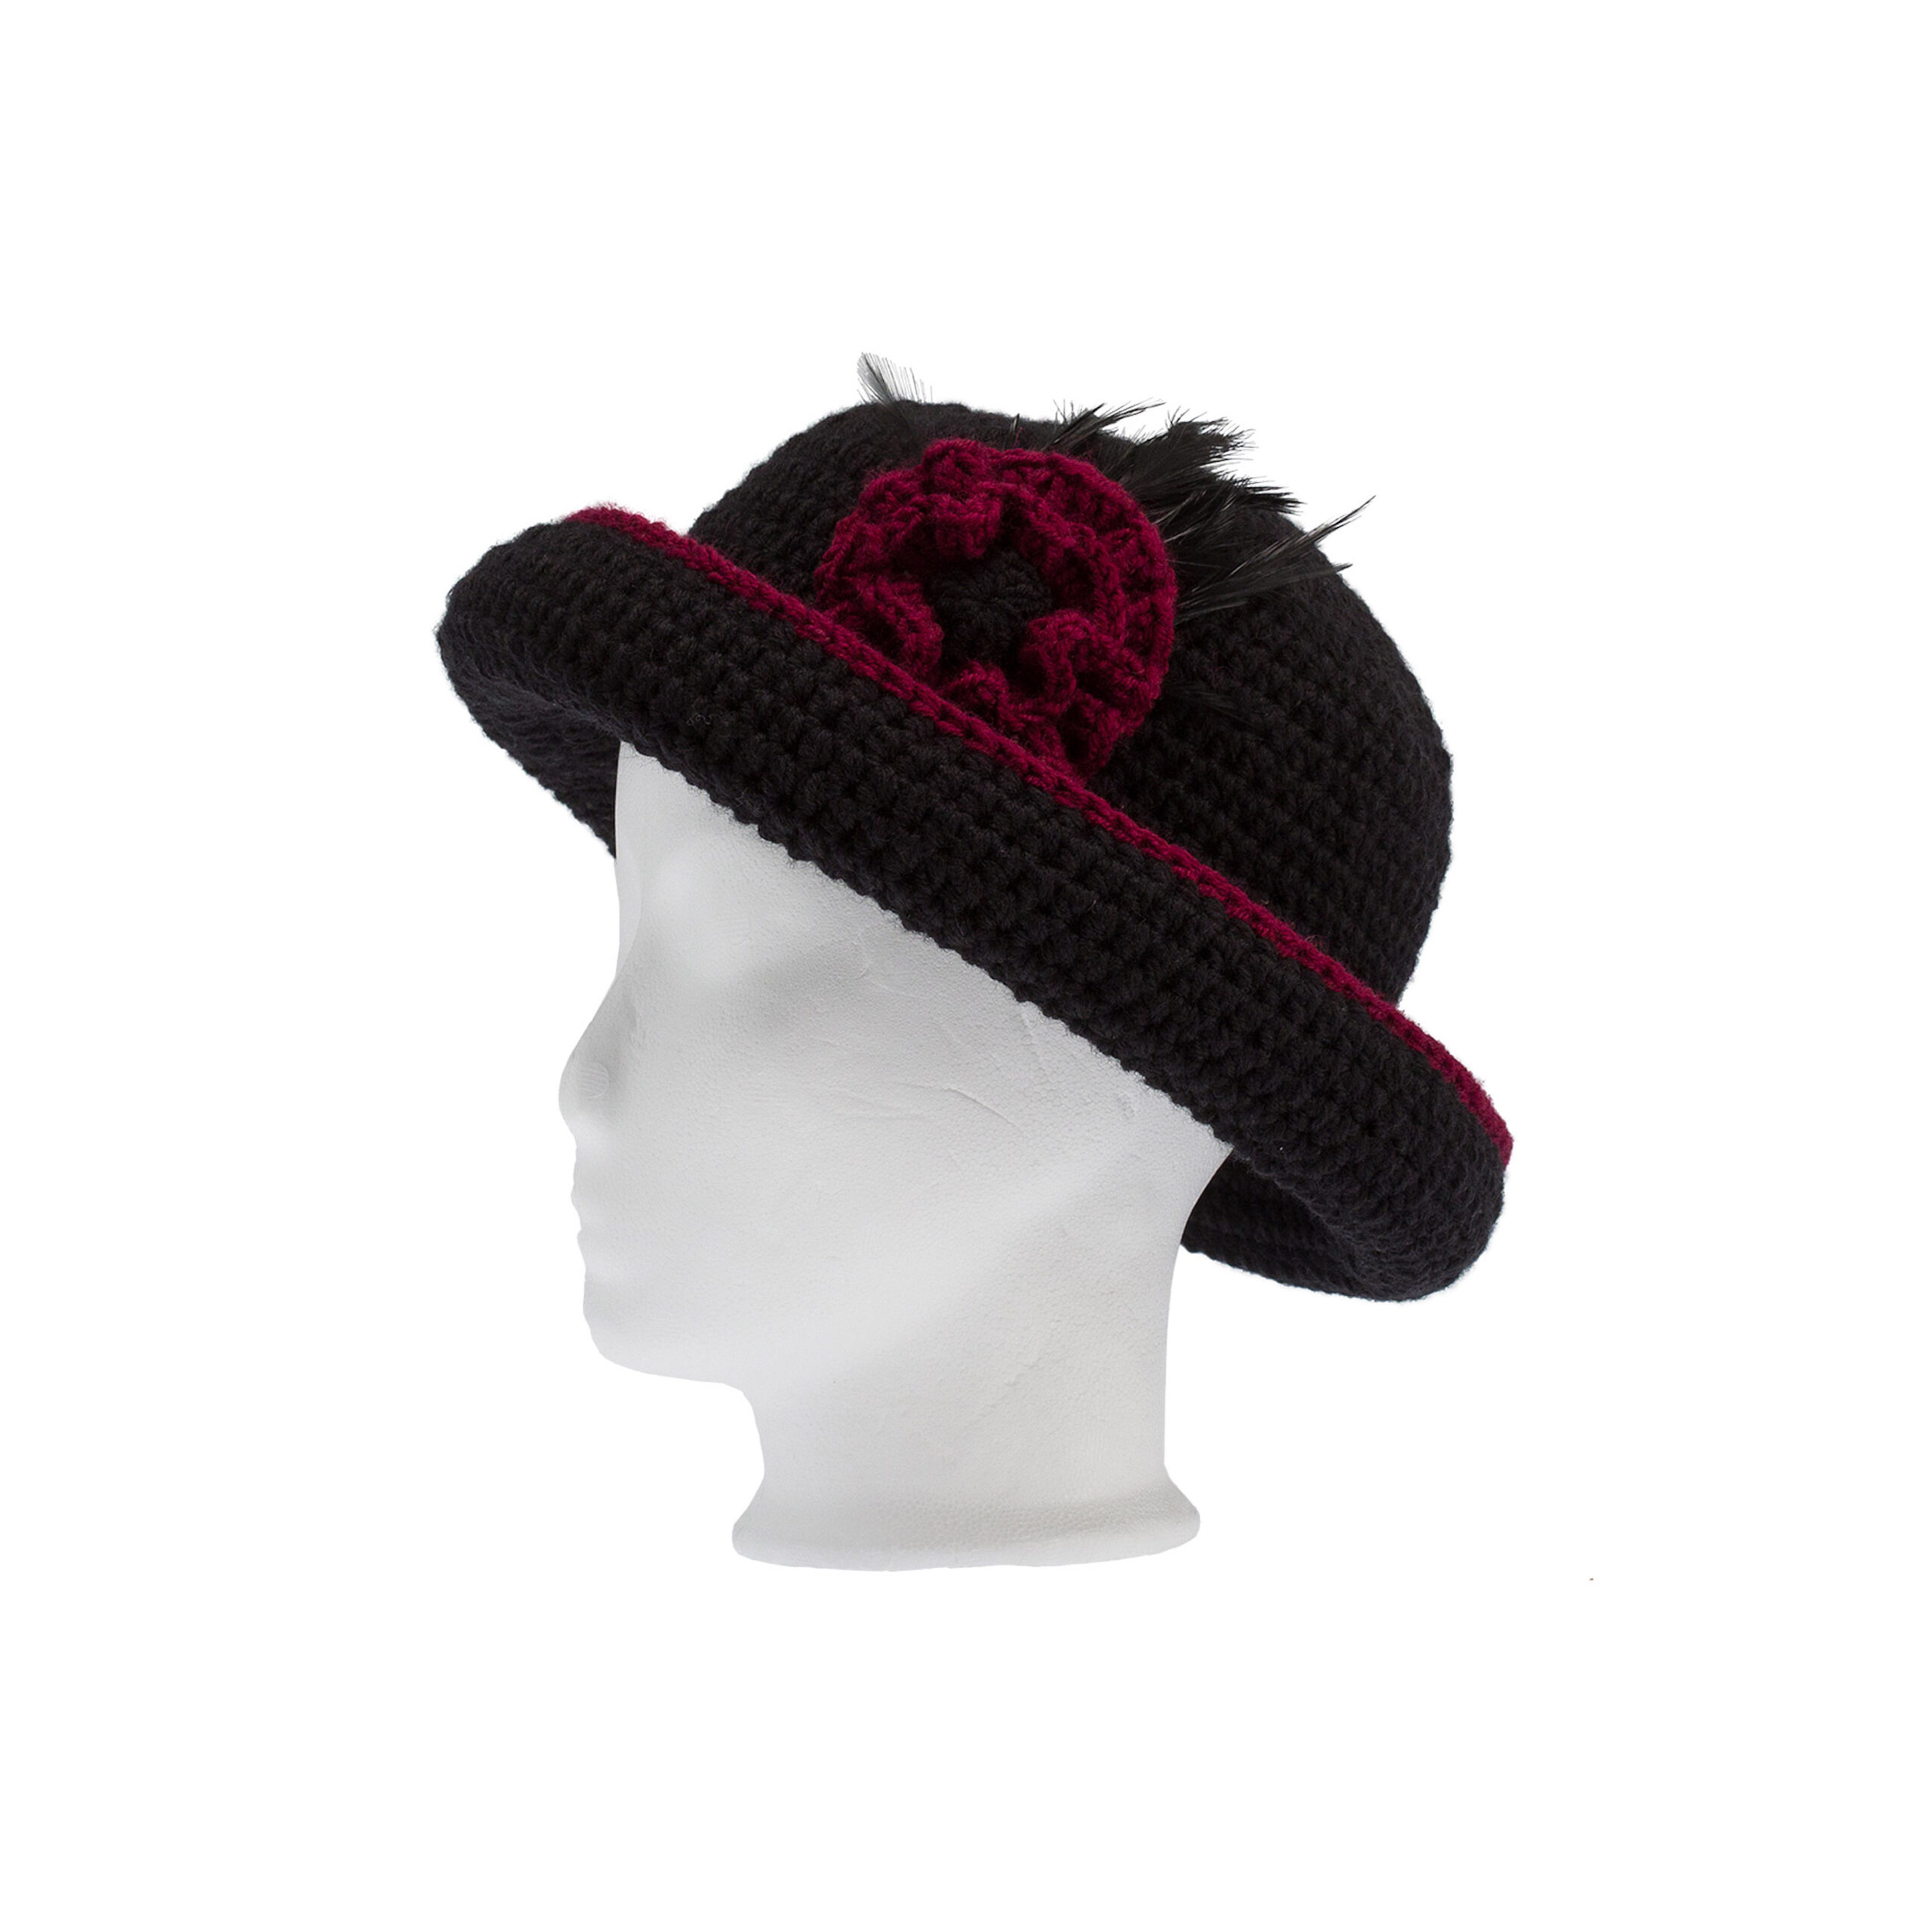 Handmade Crochet Hat In Black With Feathers Ddora